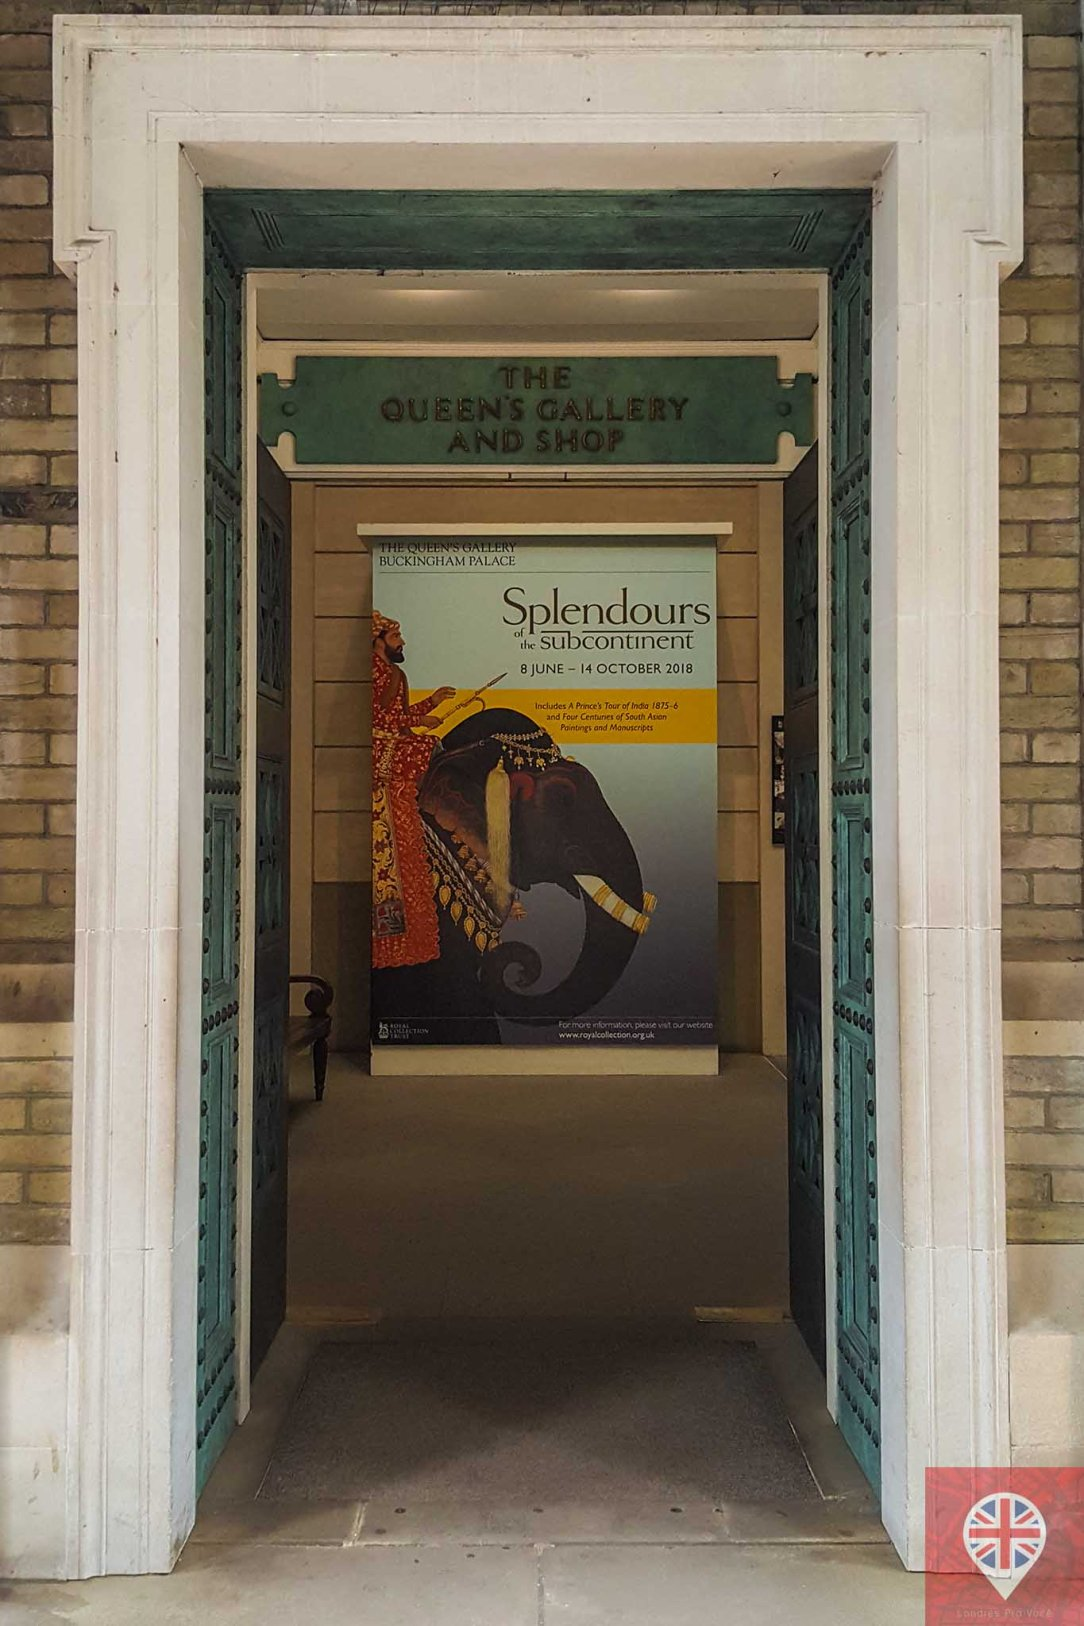 queens gallery splendorous door